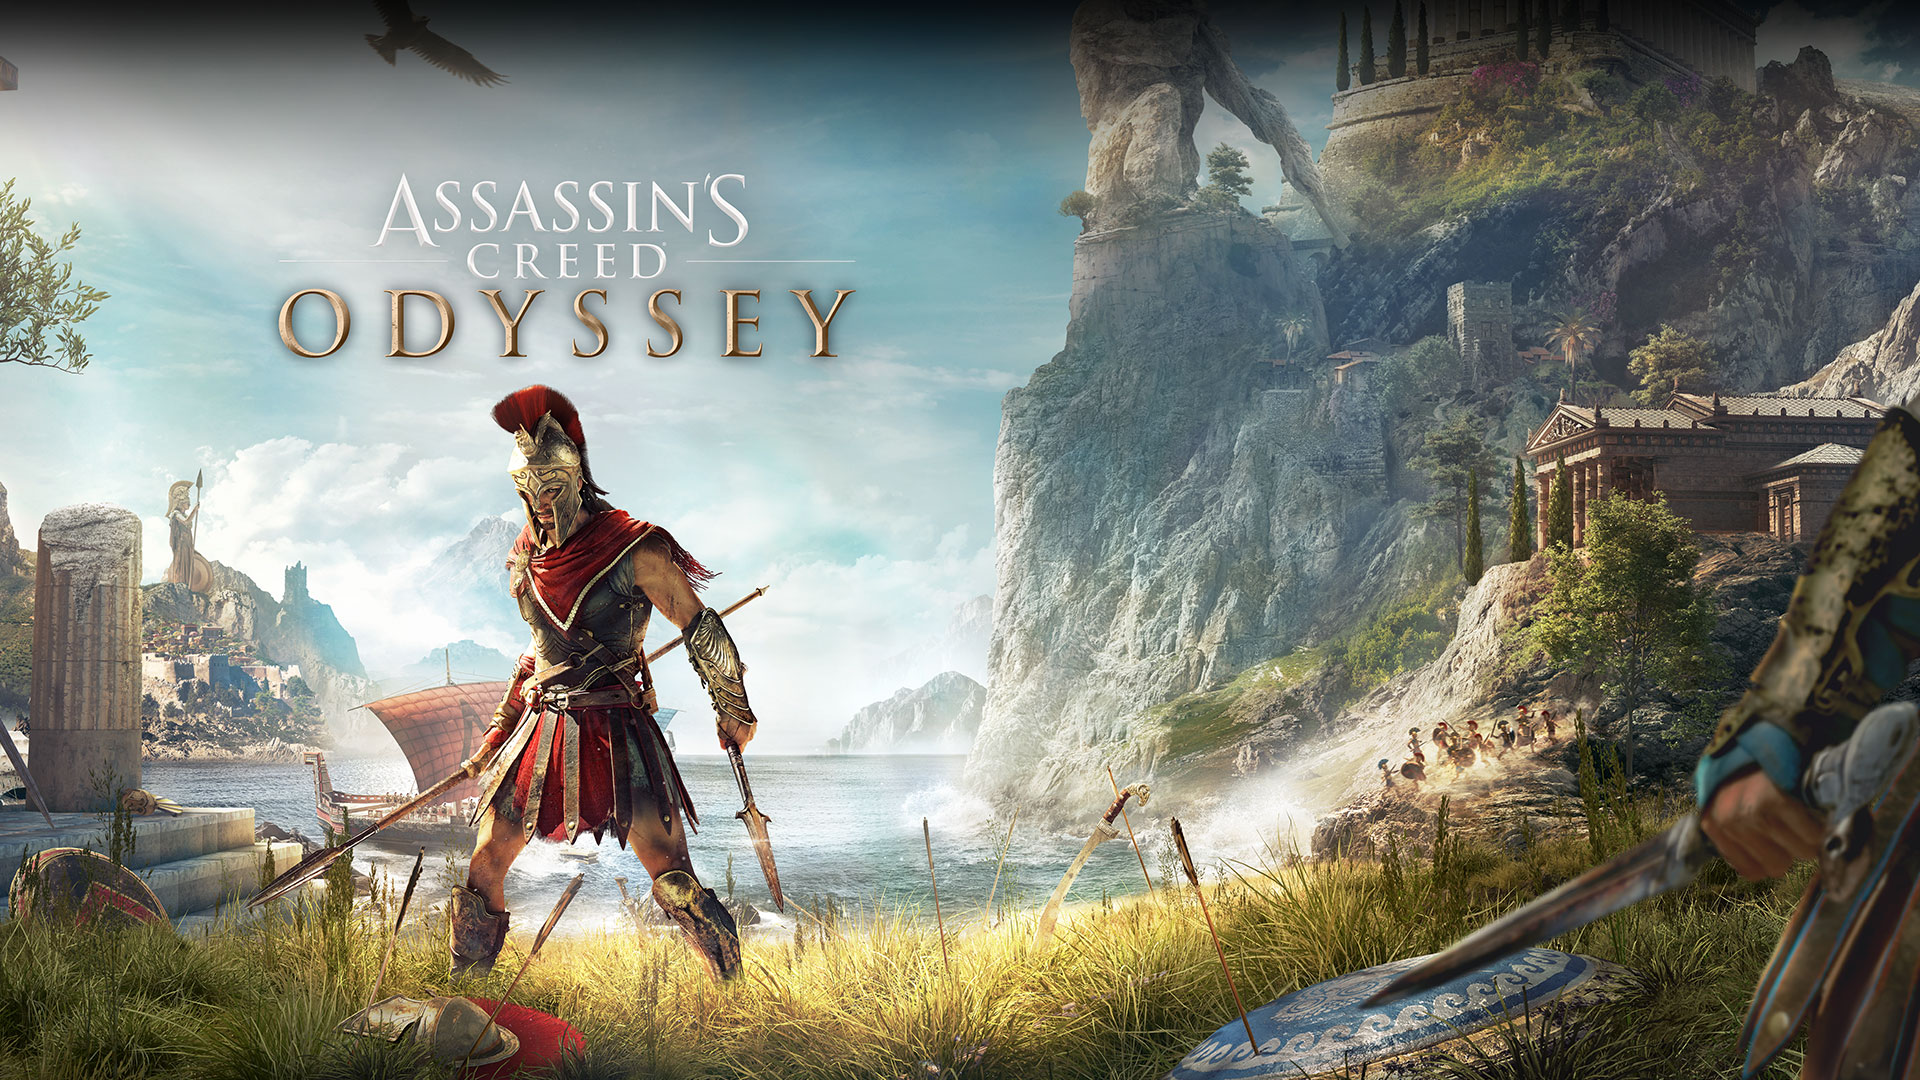 Assassin's Creed Odyssey, Greek hero Alexios stands on the shore wielding two spears